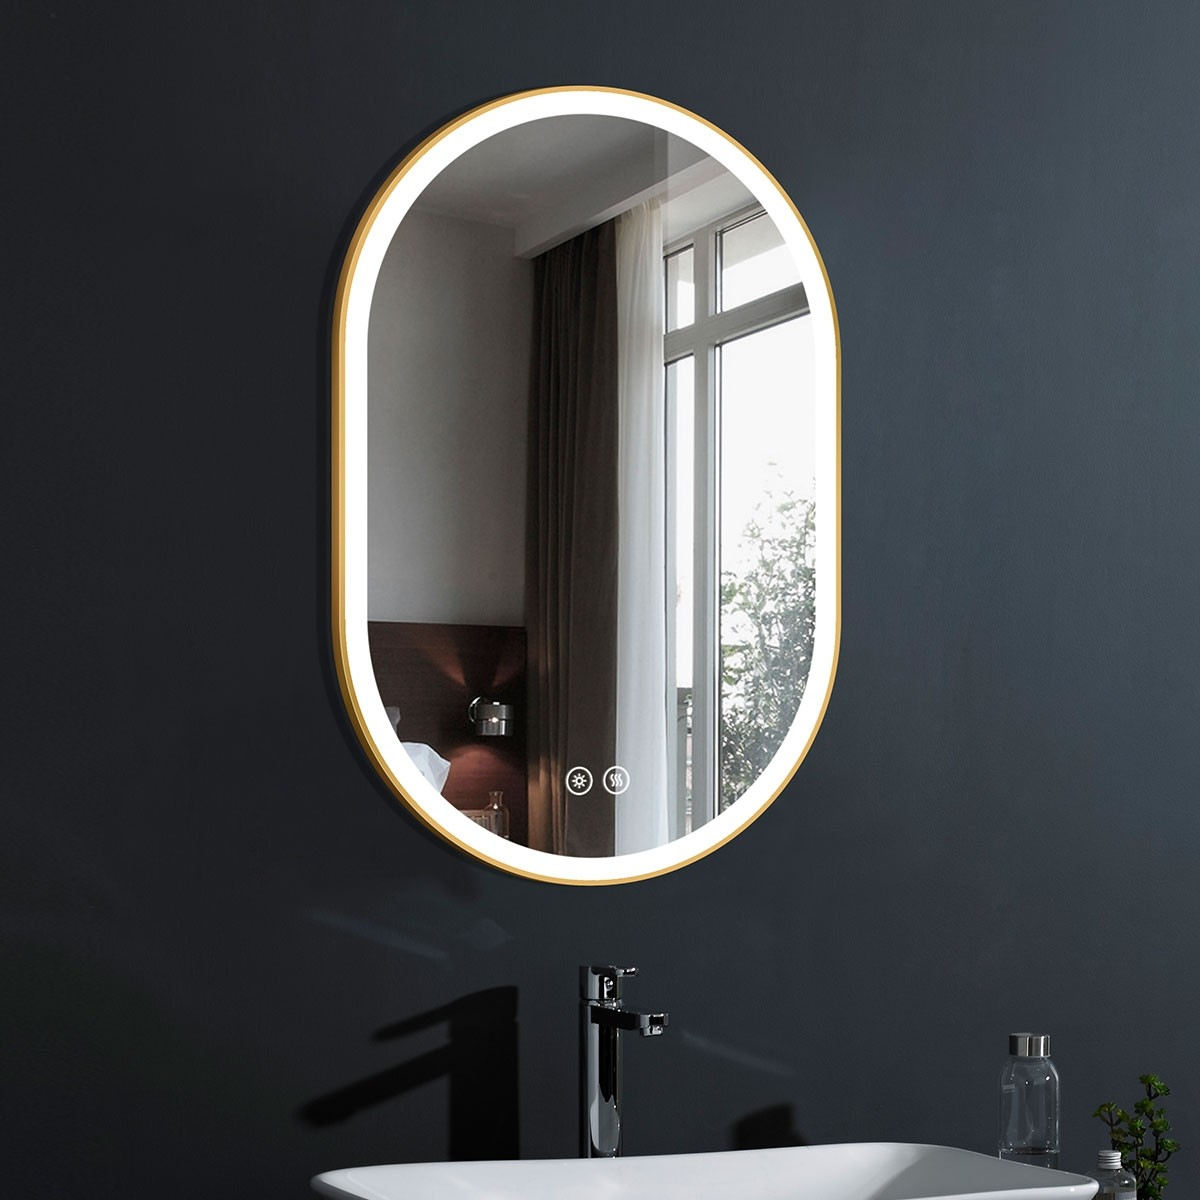 DECORAPORT 24 x 36 Inch LED Bathroom Mirror with Touch Button, Light Luxury Gold, Anti Fog, Dimmable, Vertical & Horizontal Mount (D1301-2436)